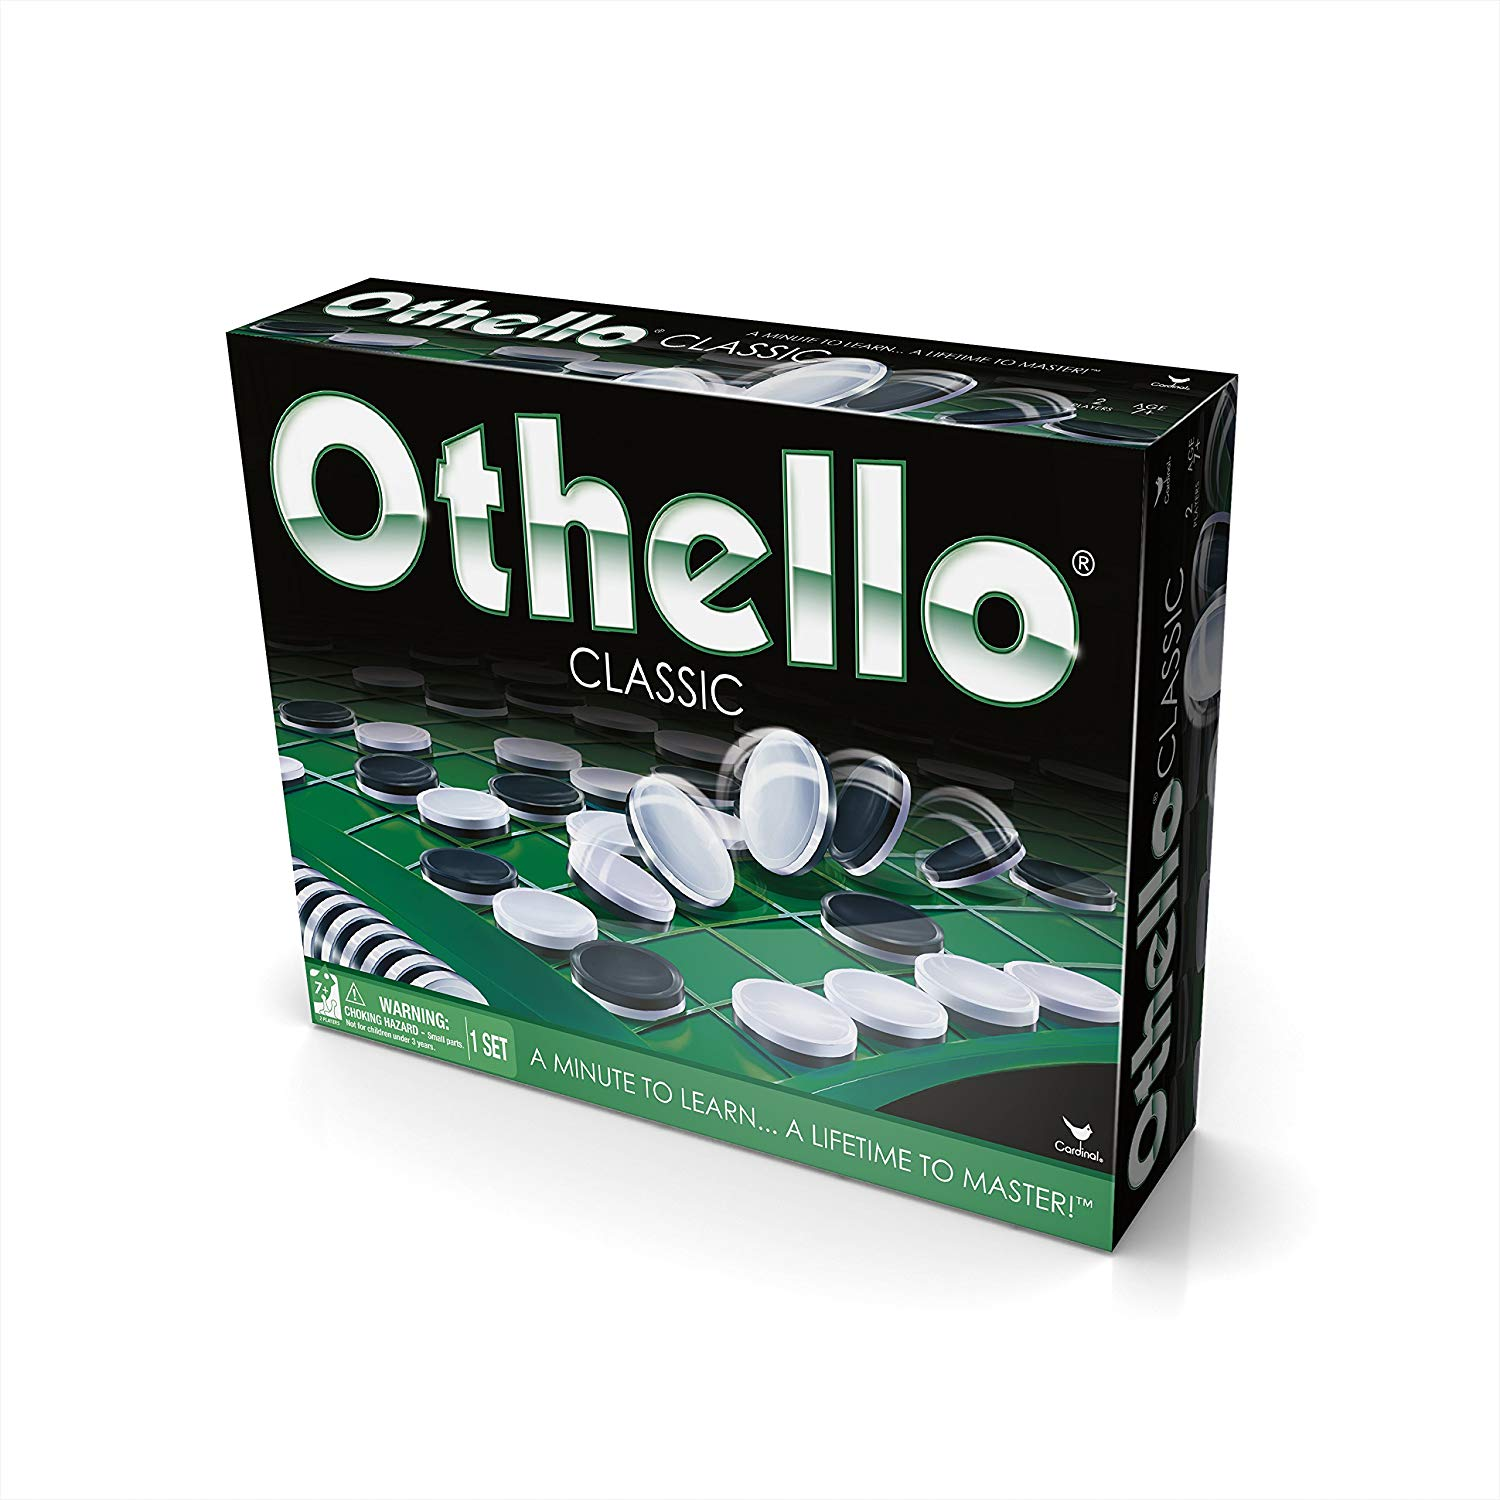 othello best abstract board games for chess lovers.jpg